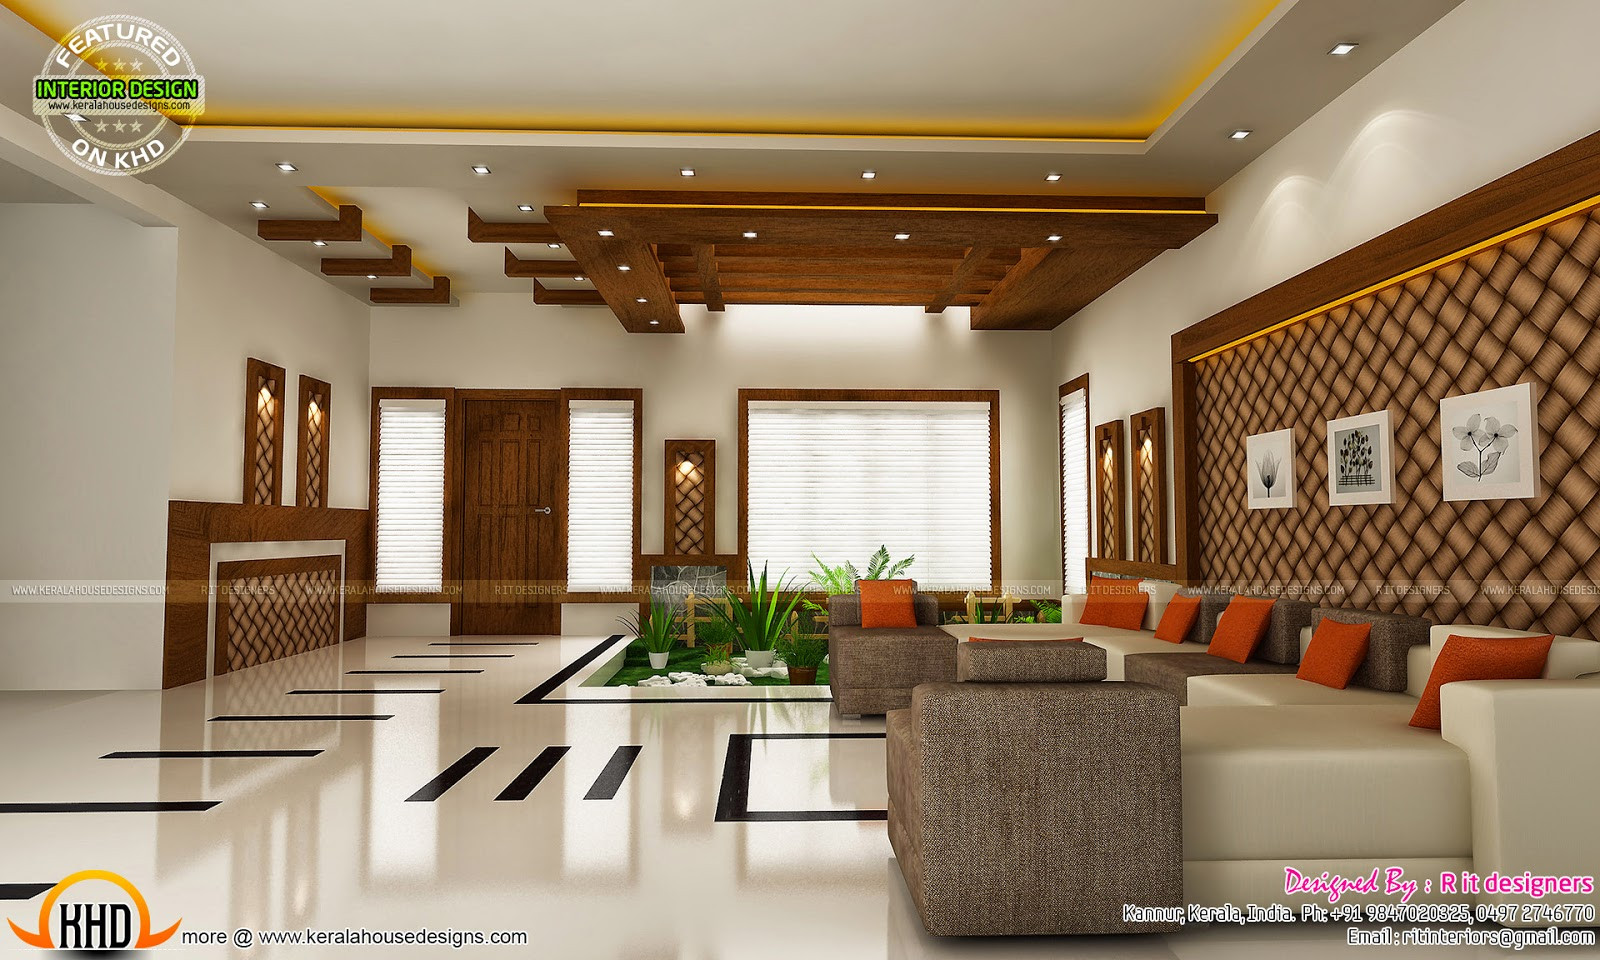 Living Room Designs Kerala Style 1447 square feet double floor contemporary home design. interior